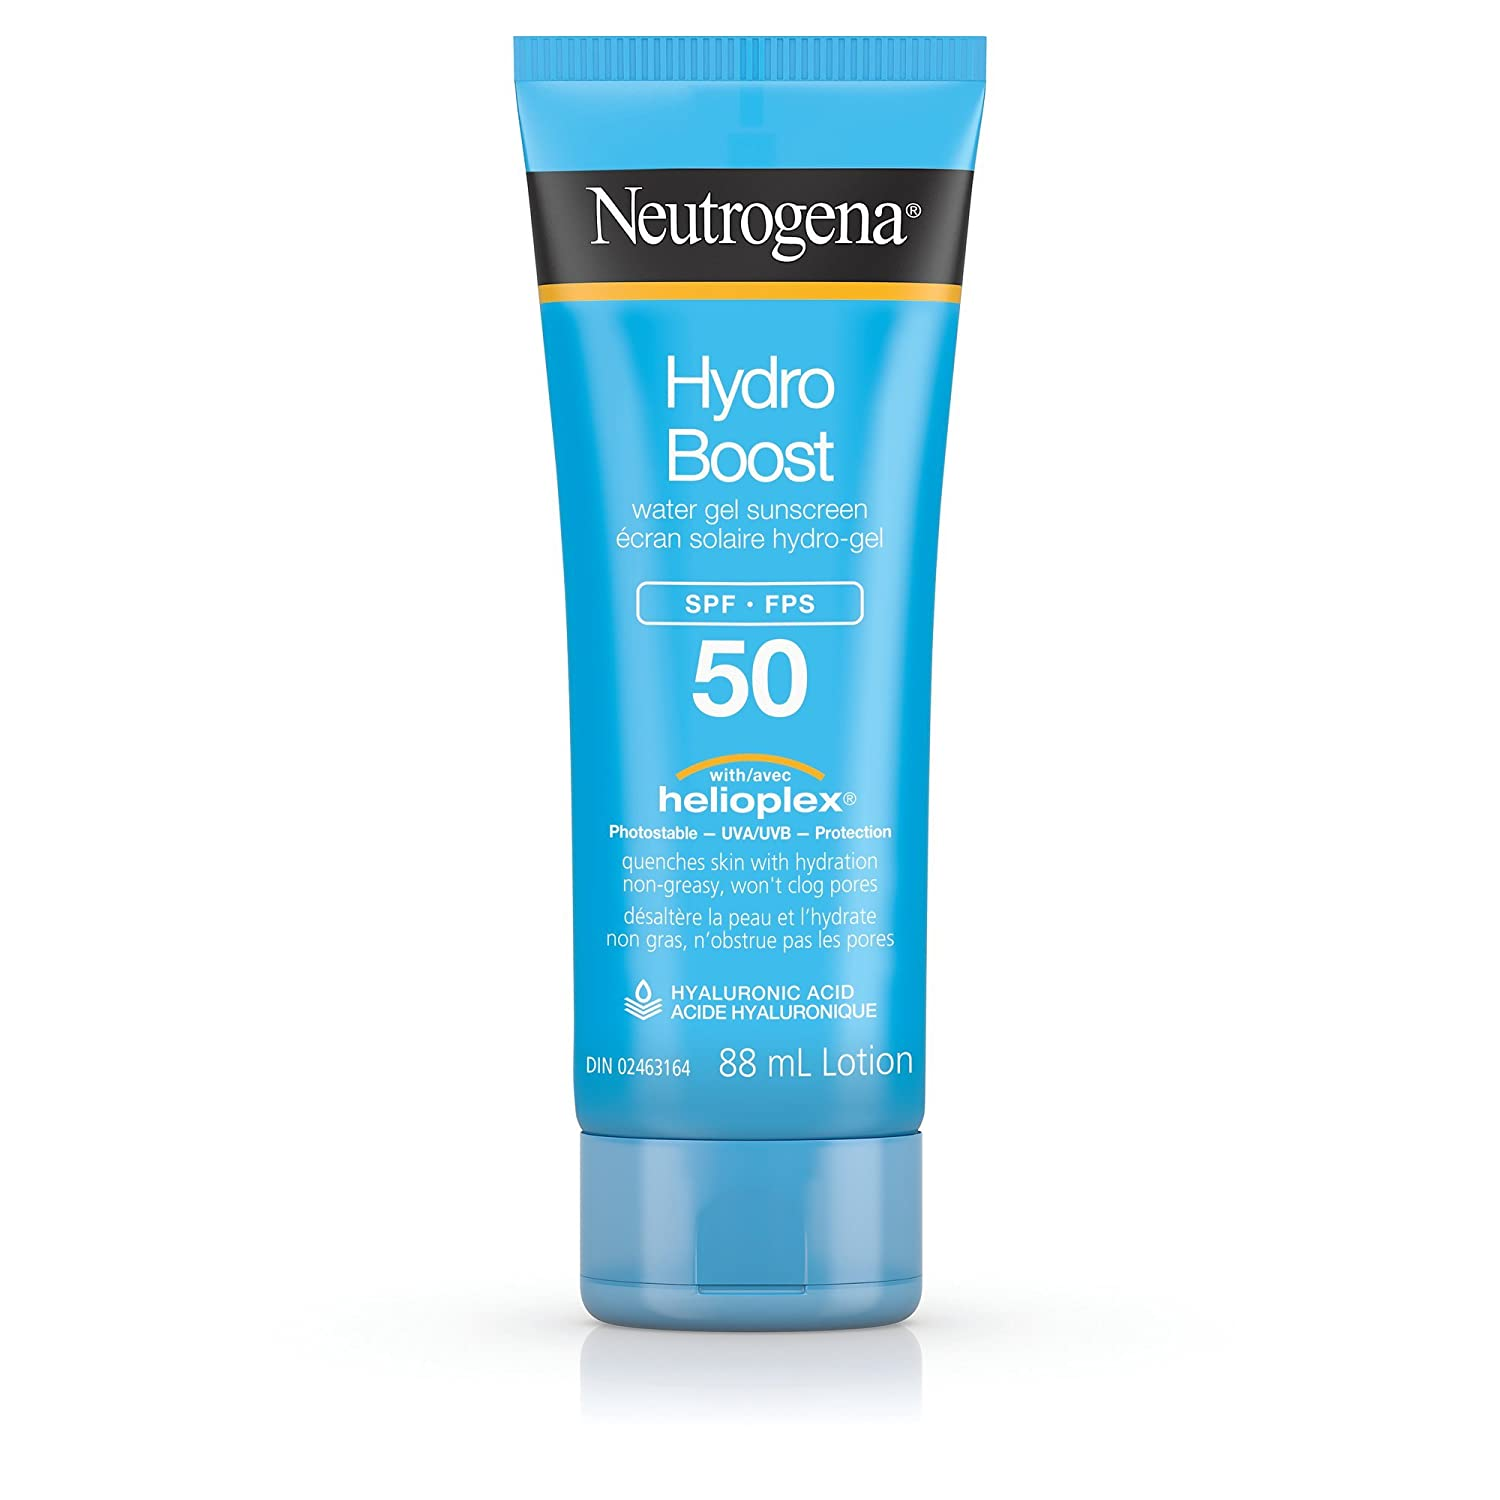 Neutrogena Hydroboost Water Gel Sunscreen SPF 50, with Hyaluronic Acid to Hydrate Skin, Water Resistant, 88ml Johnson & Johnson